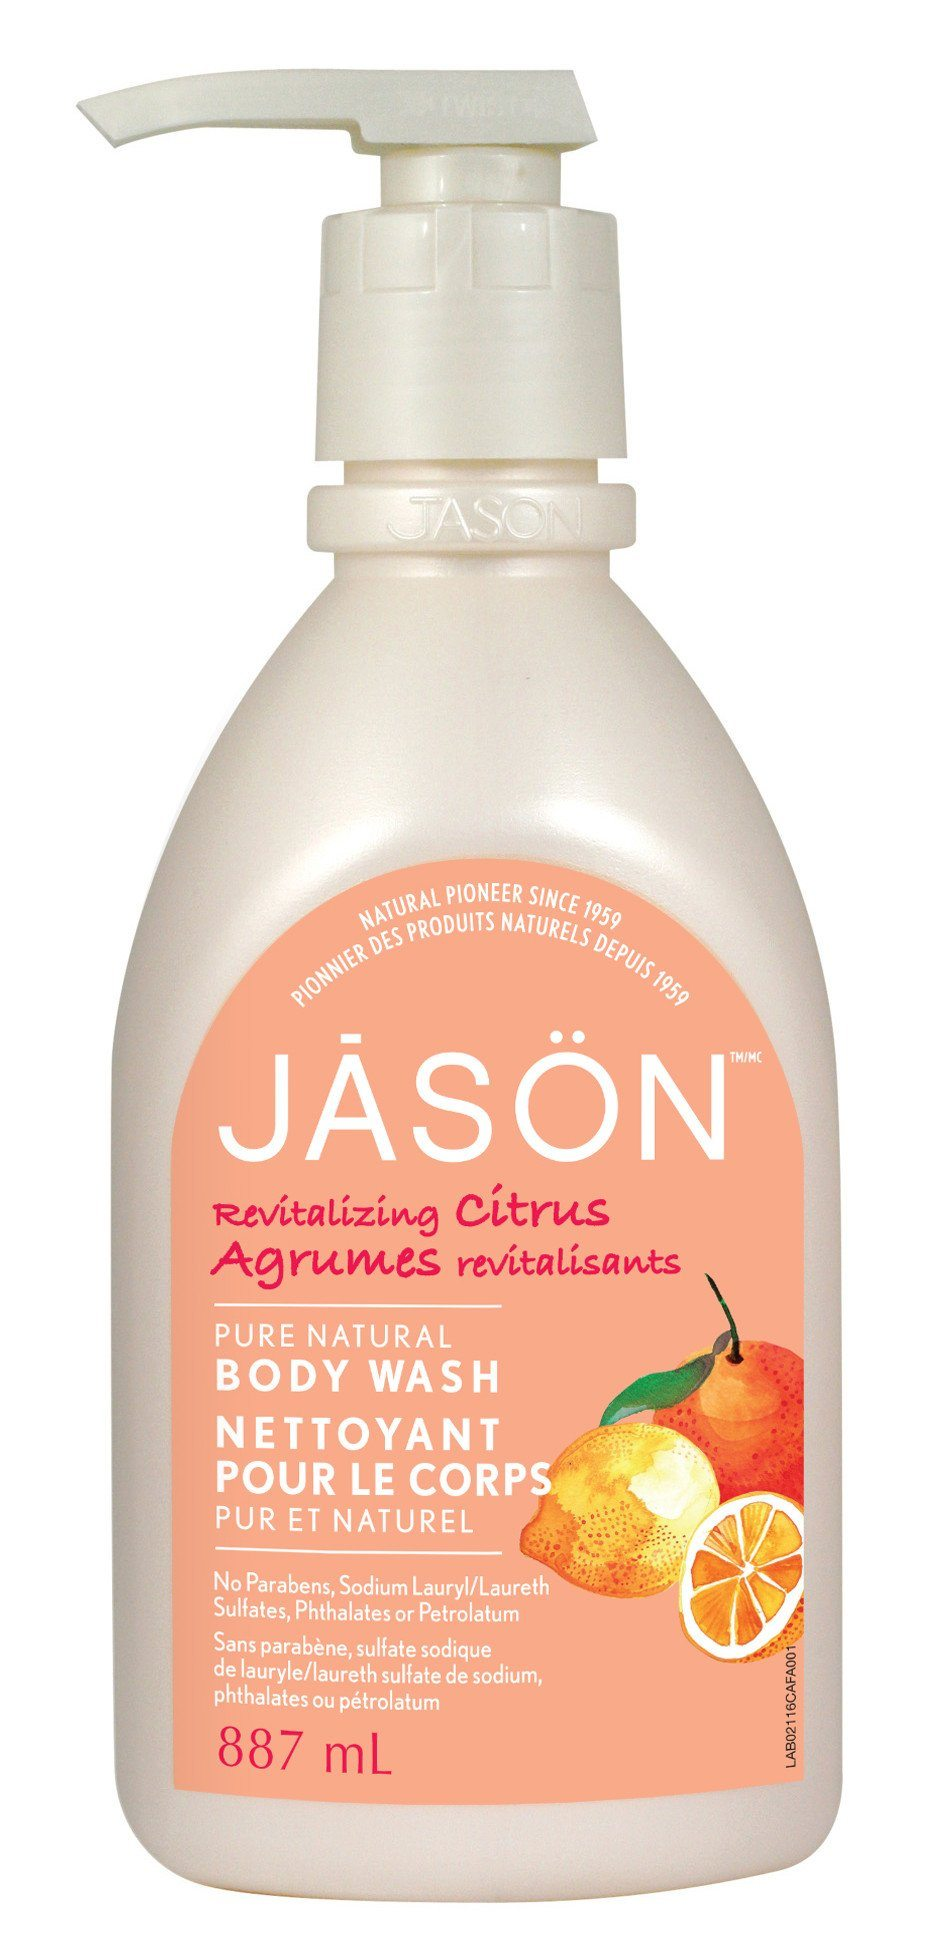 Personal Care - JASON - Revitalizing Citrus Body Wash, 887ml